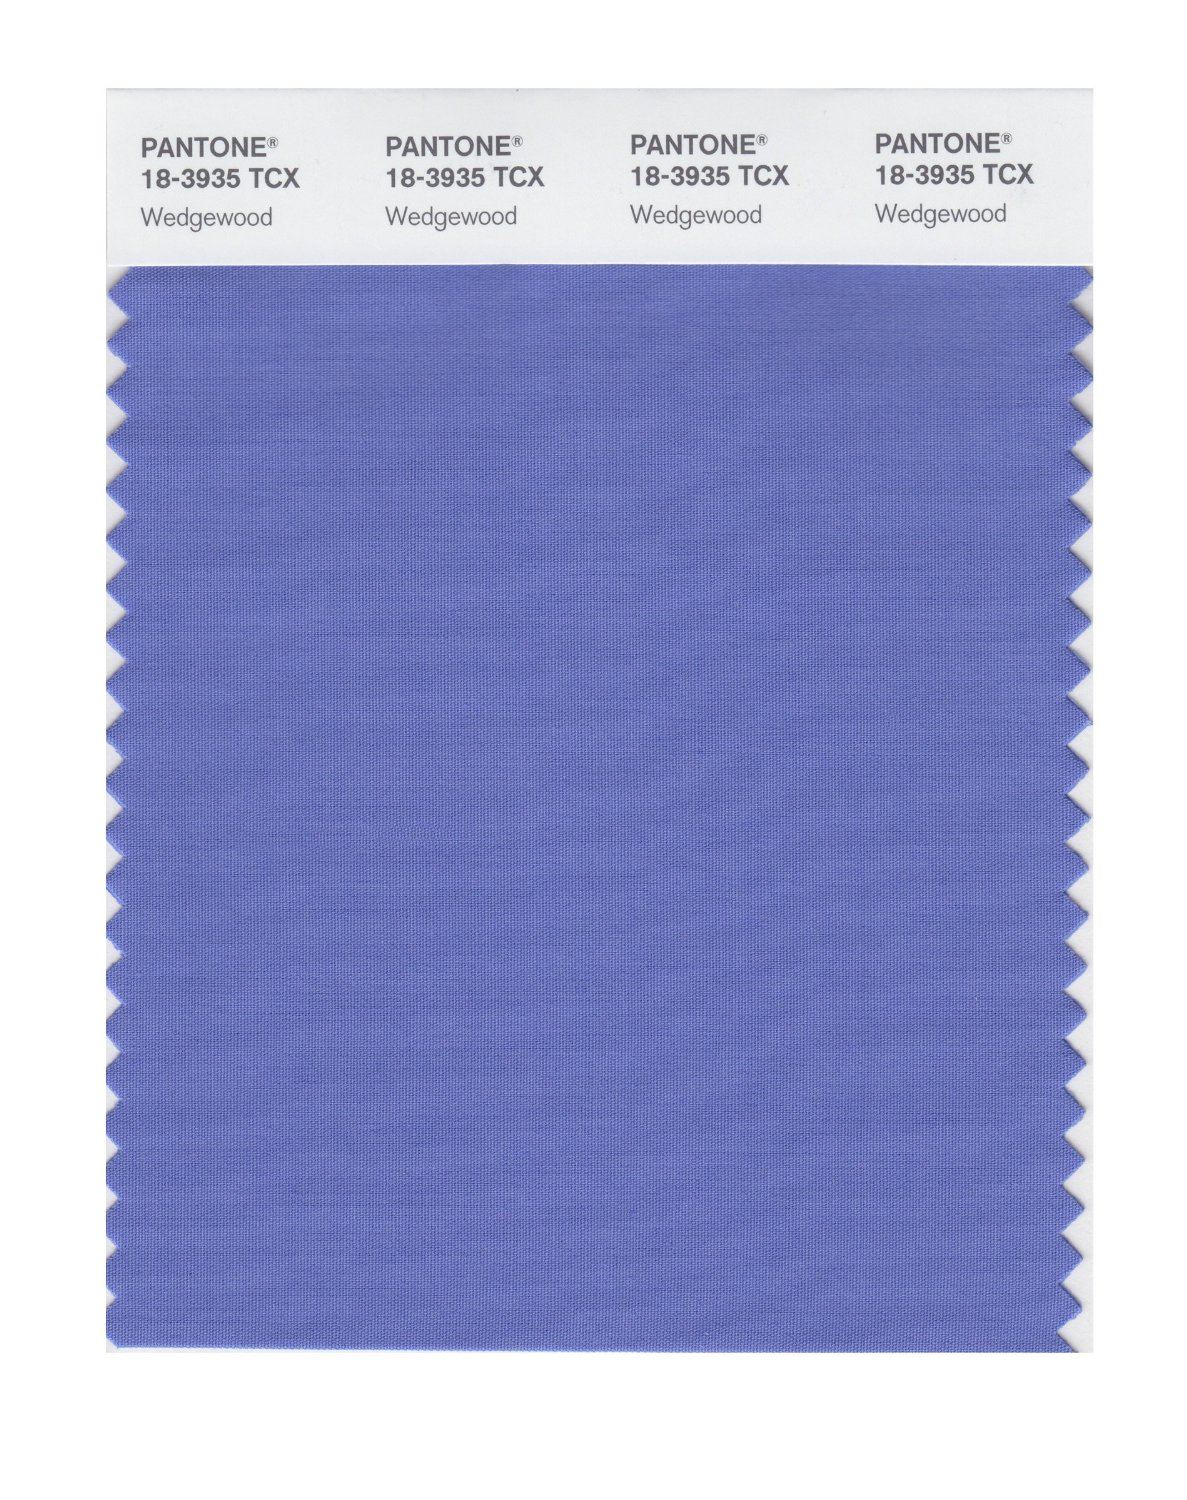 Pantone Smart Swatch 18-3935 Wedgewood